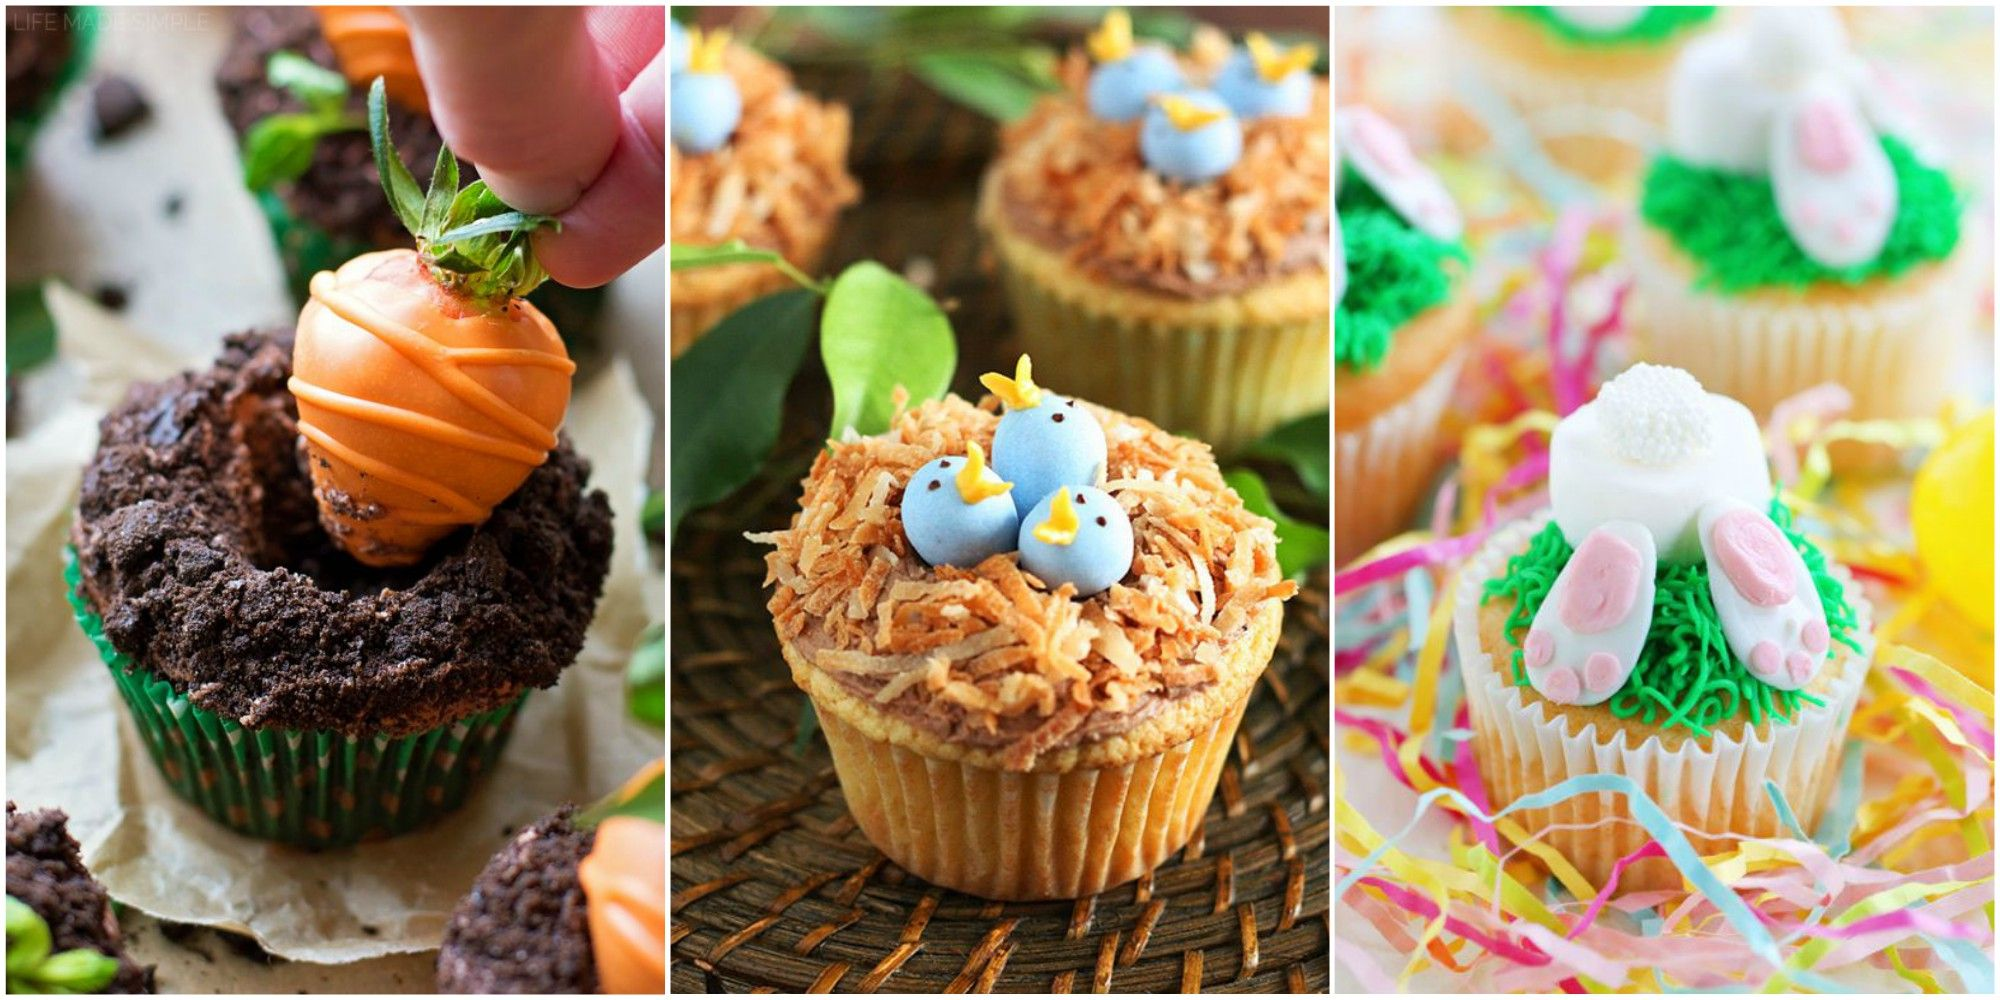 16 Cute Easter Cupcake Ideas Decorating & Recipes for Easter Cupcakes